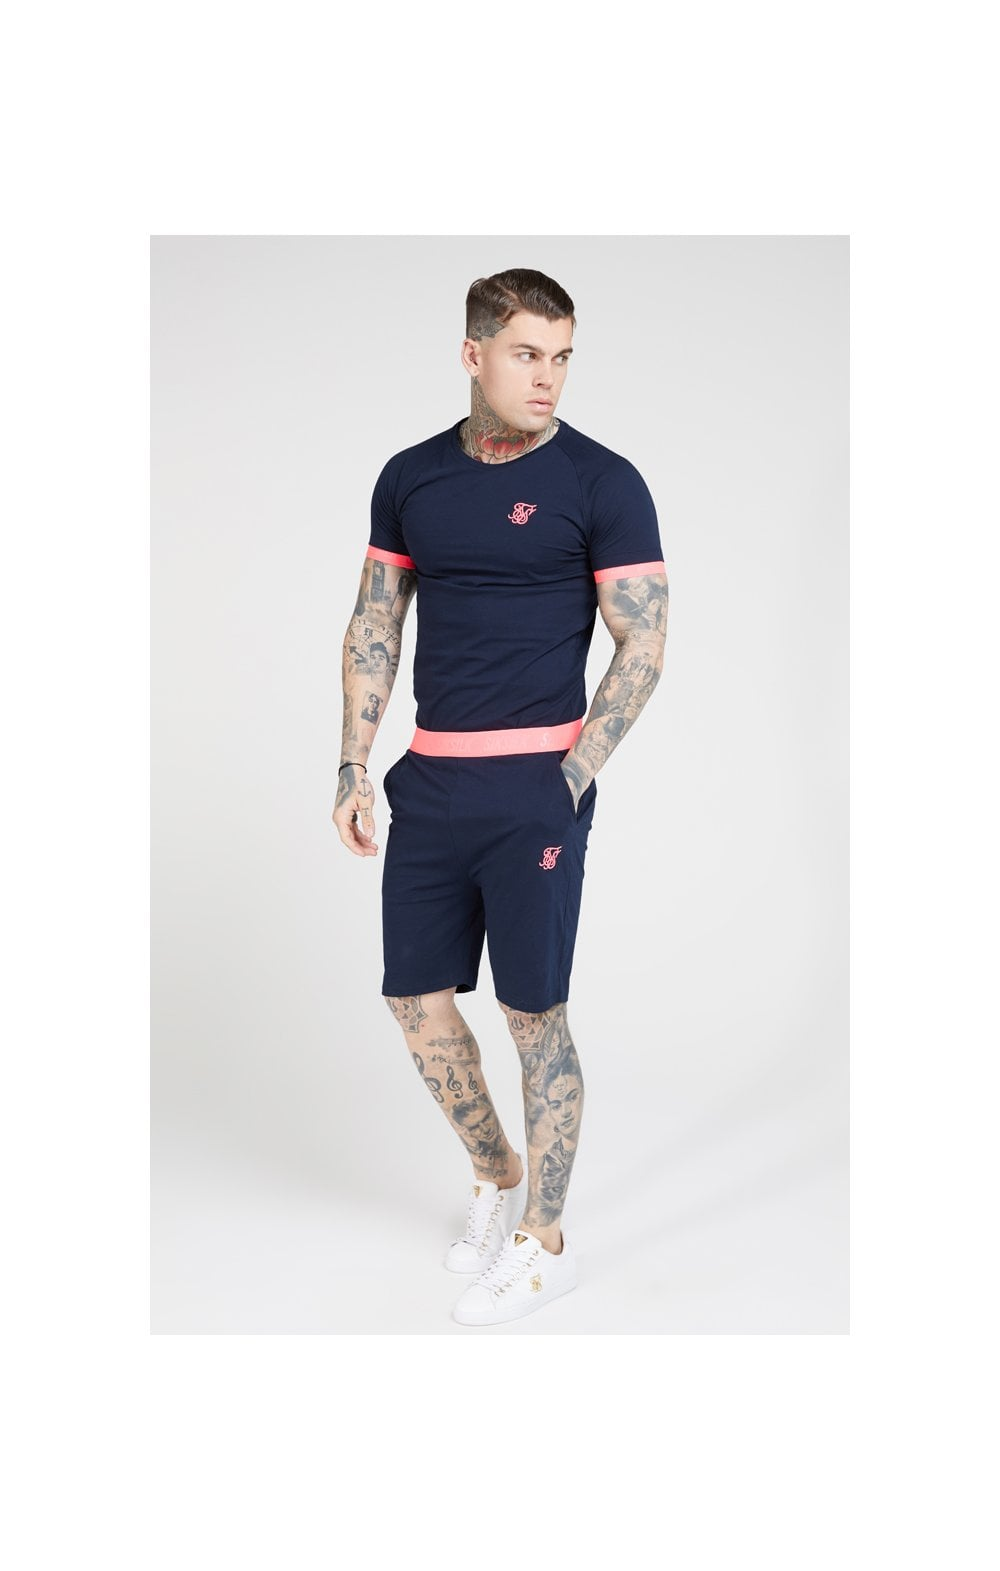 Load image into Gallery viewer, SikSilk S/S Neon Tech Tee – Navy & Neon Pink (2)